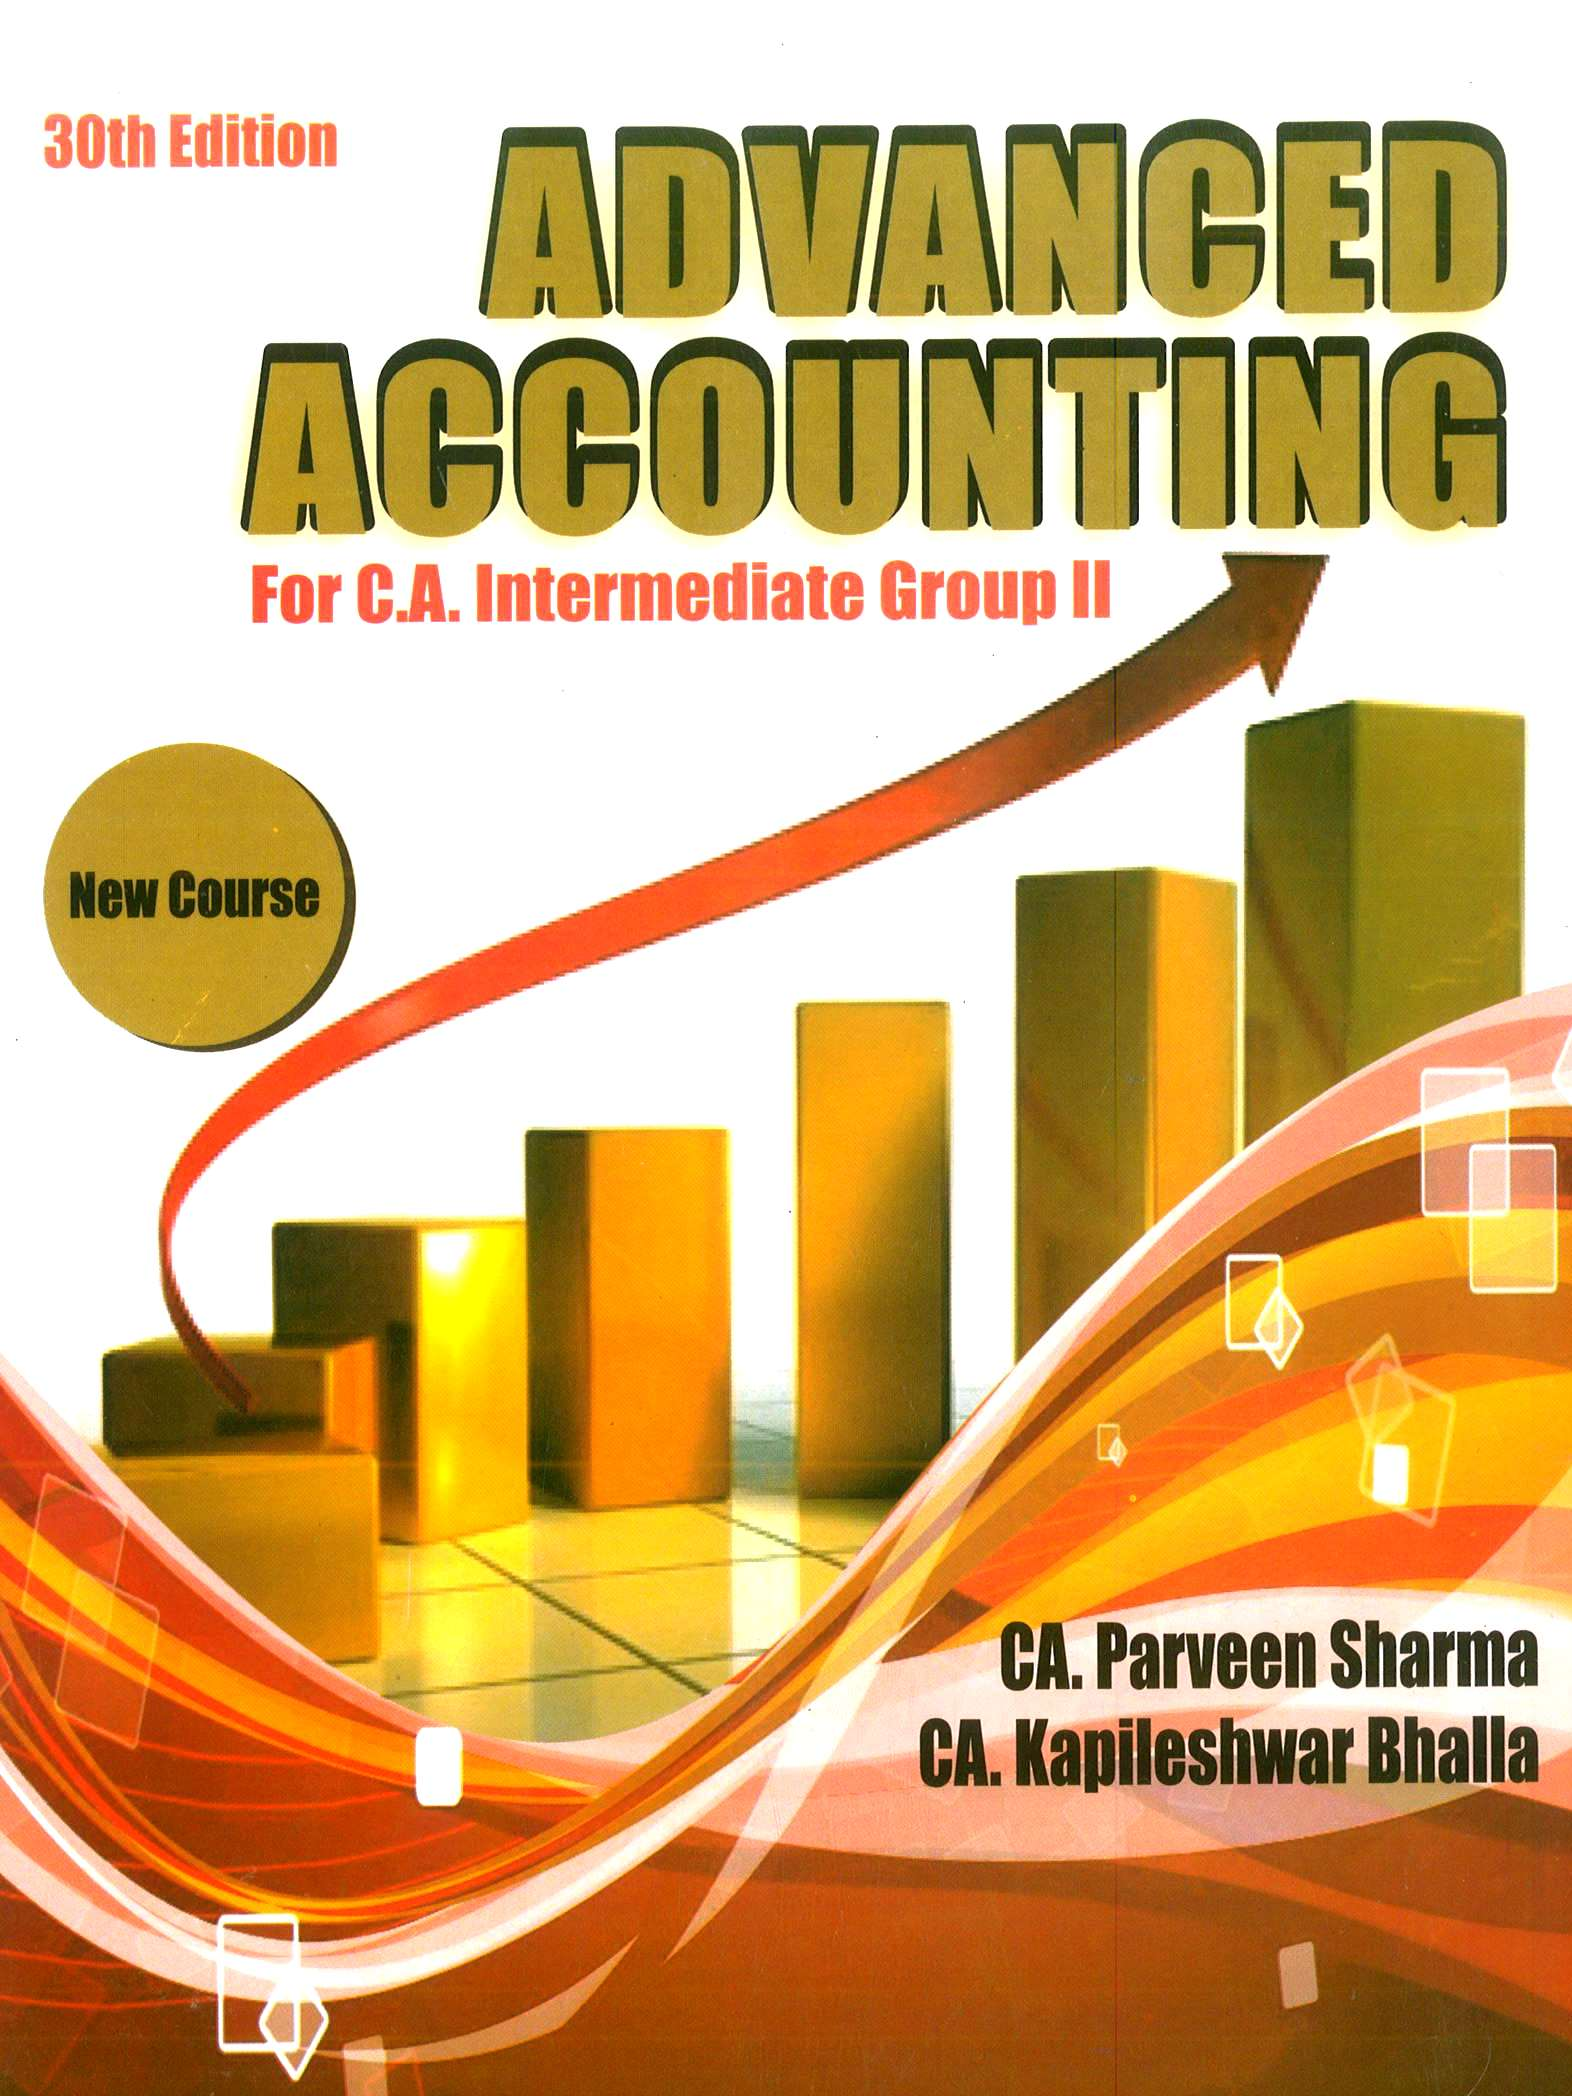 Pooja Law House Advanced Accounting including Accounting Standards for Nov 2018 for CA IPCC Group II by CA Parveen Sharma and CA Kapileshwar Bhalla (Pooja Law House Publishing) Edition 30th, 2018